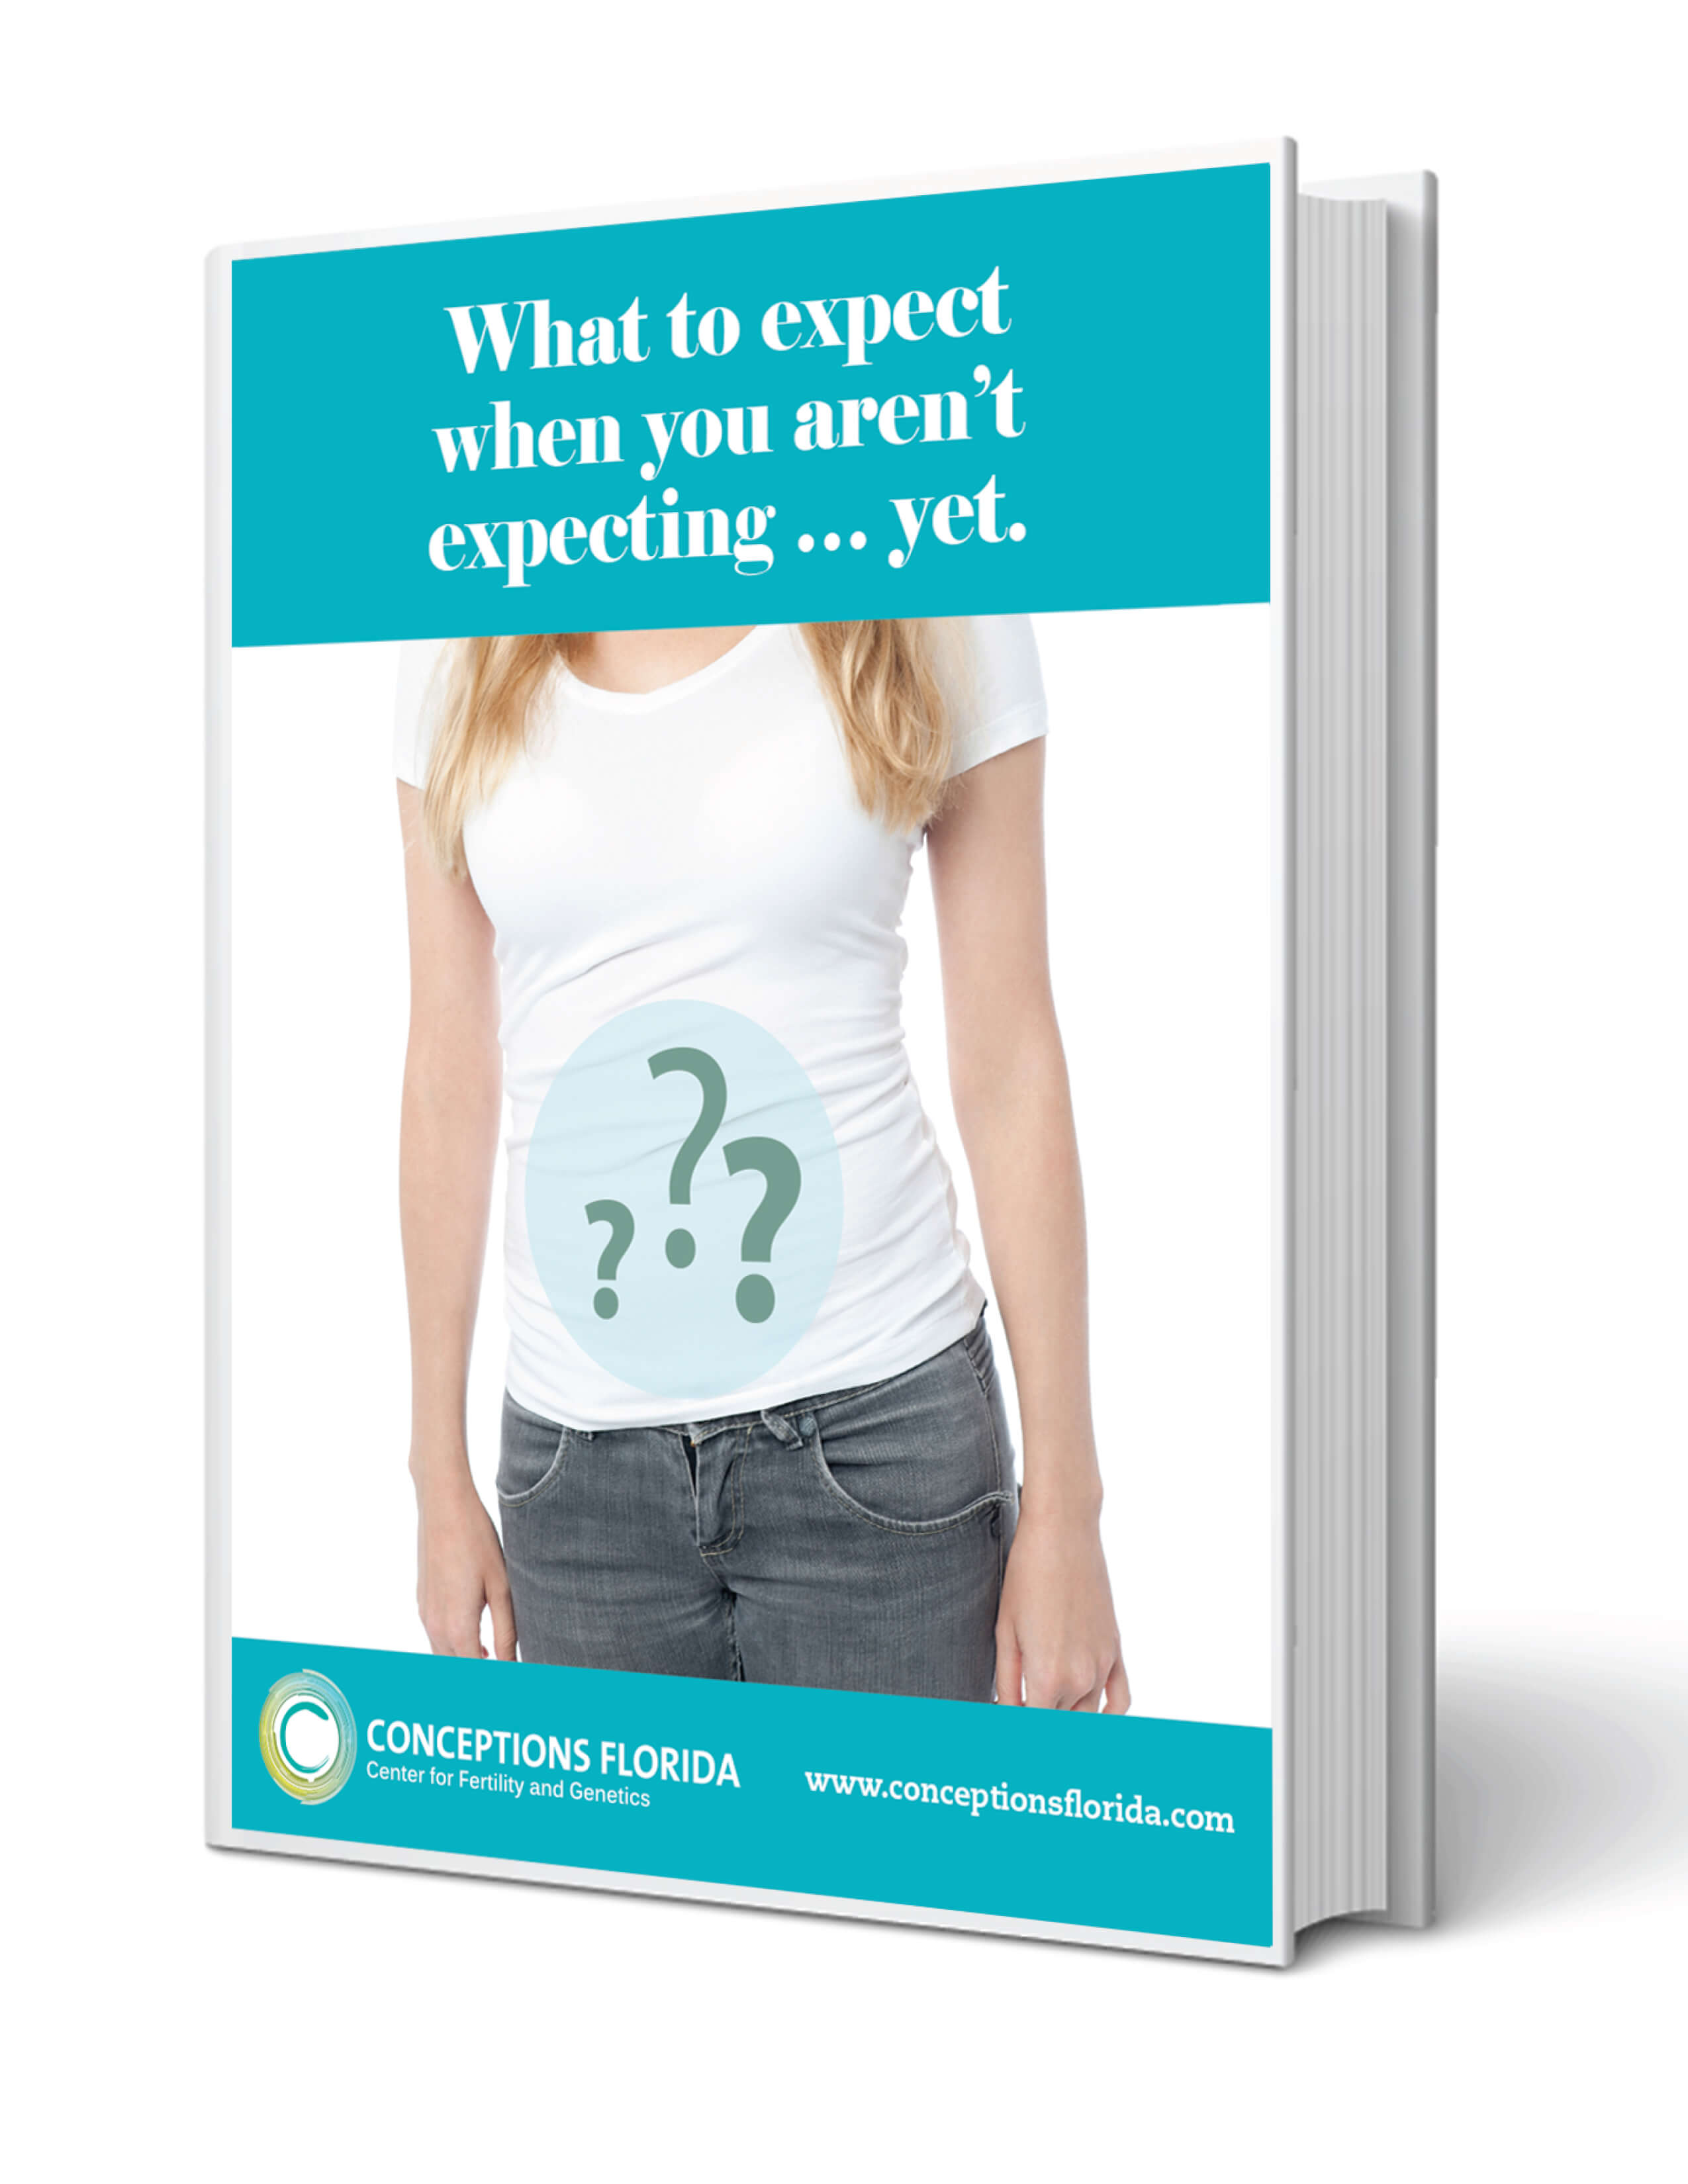 Conceptions Florida - The FAQs About IVF: Helpful Answers to Your Questions coral gables fl - The FAQs About IVF eBook - infertility treatment Miramar FL - infertility treatment near me